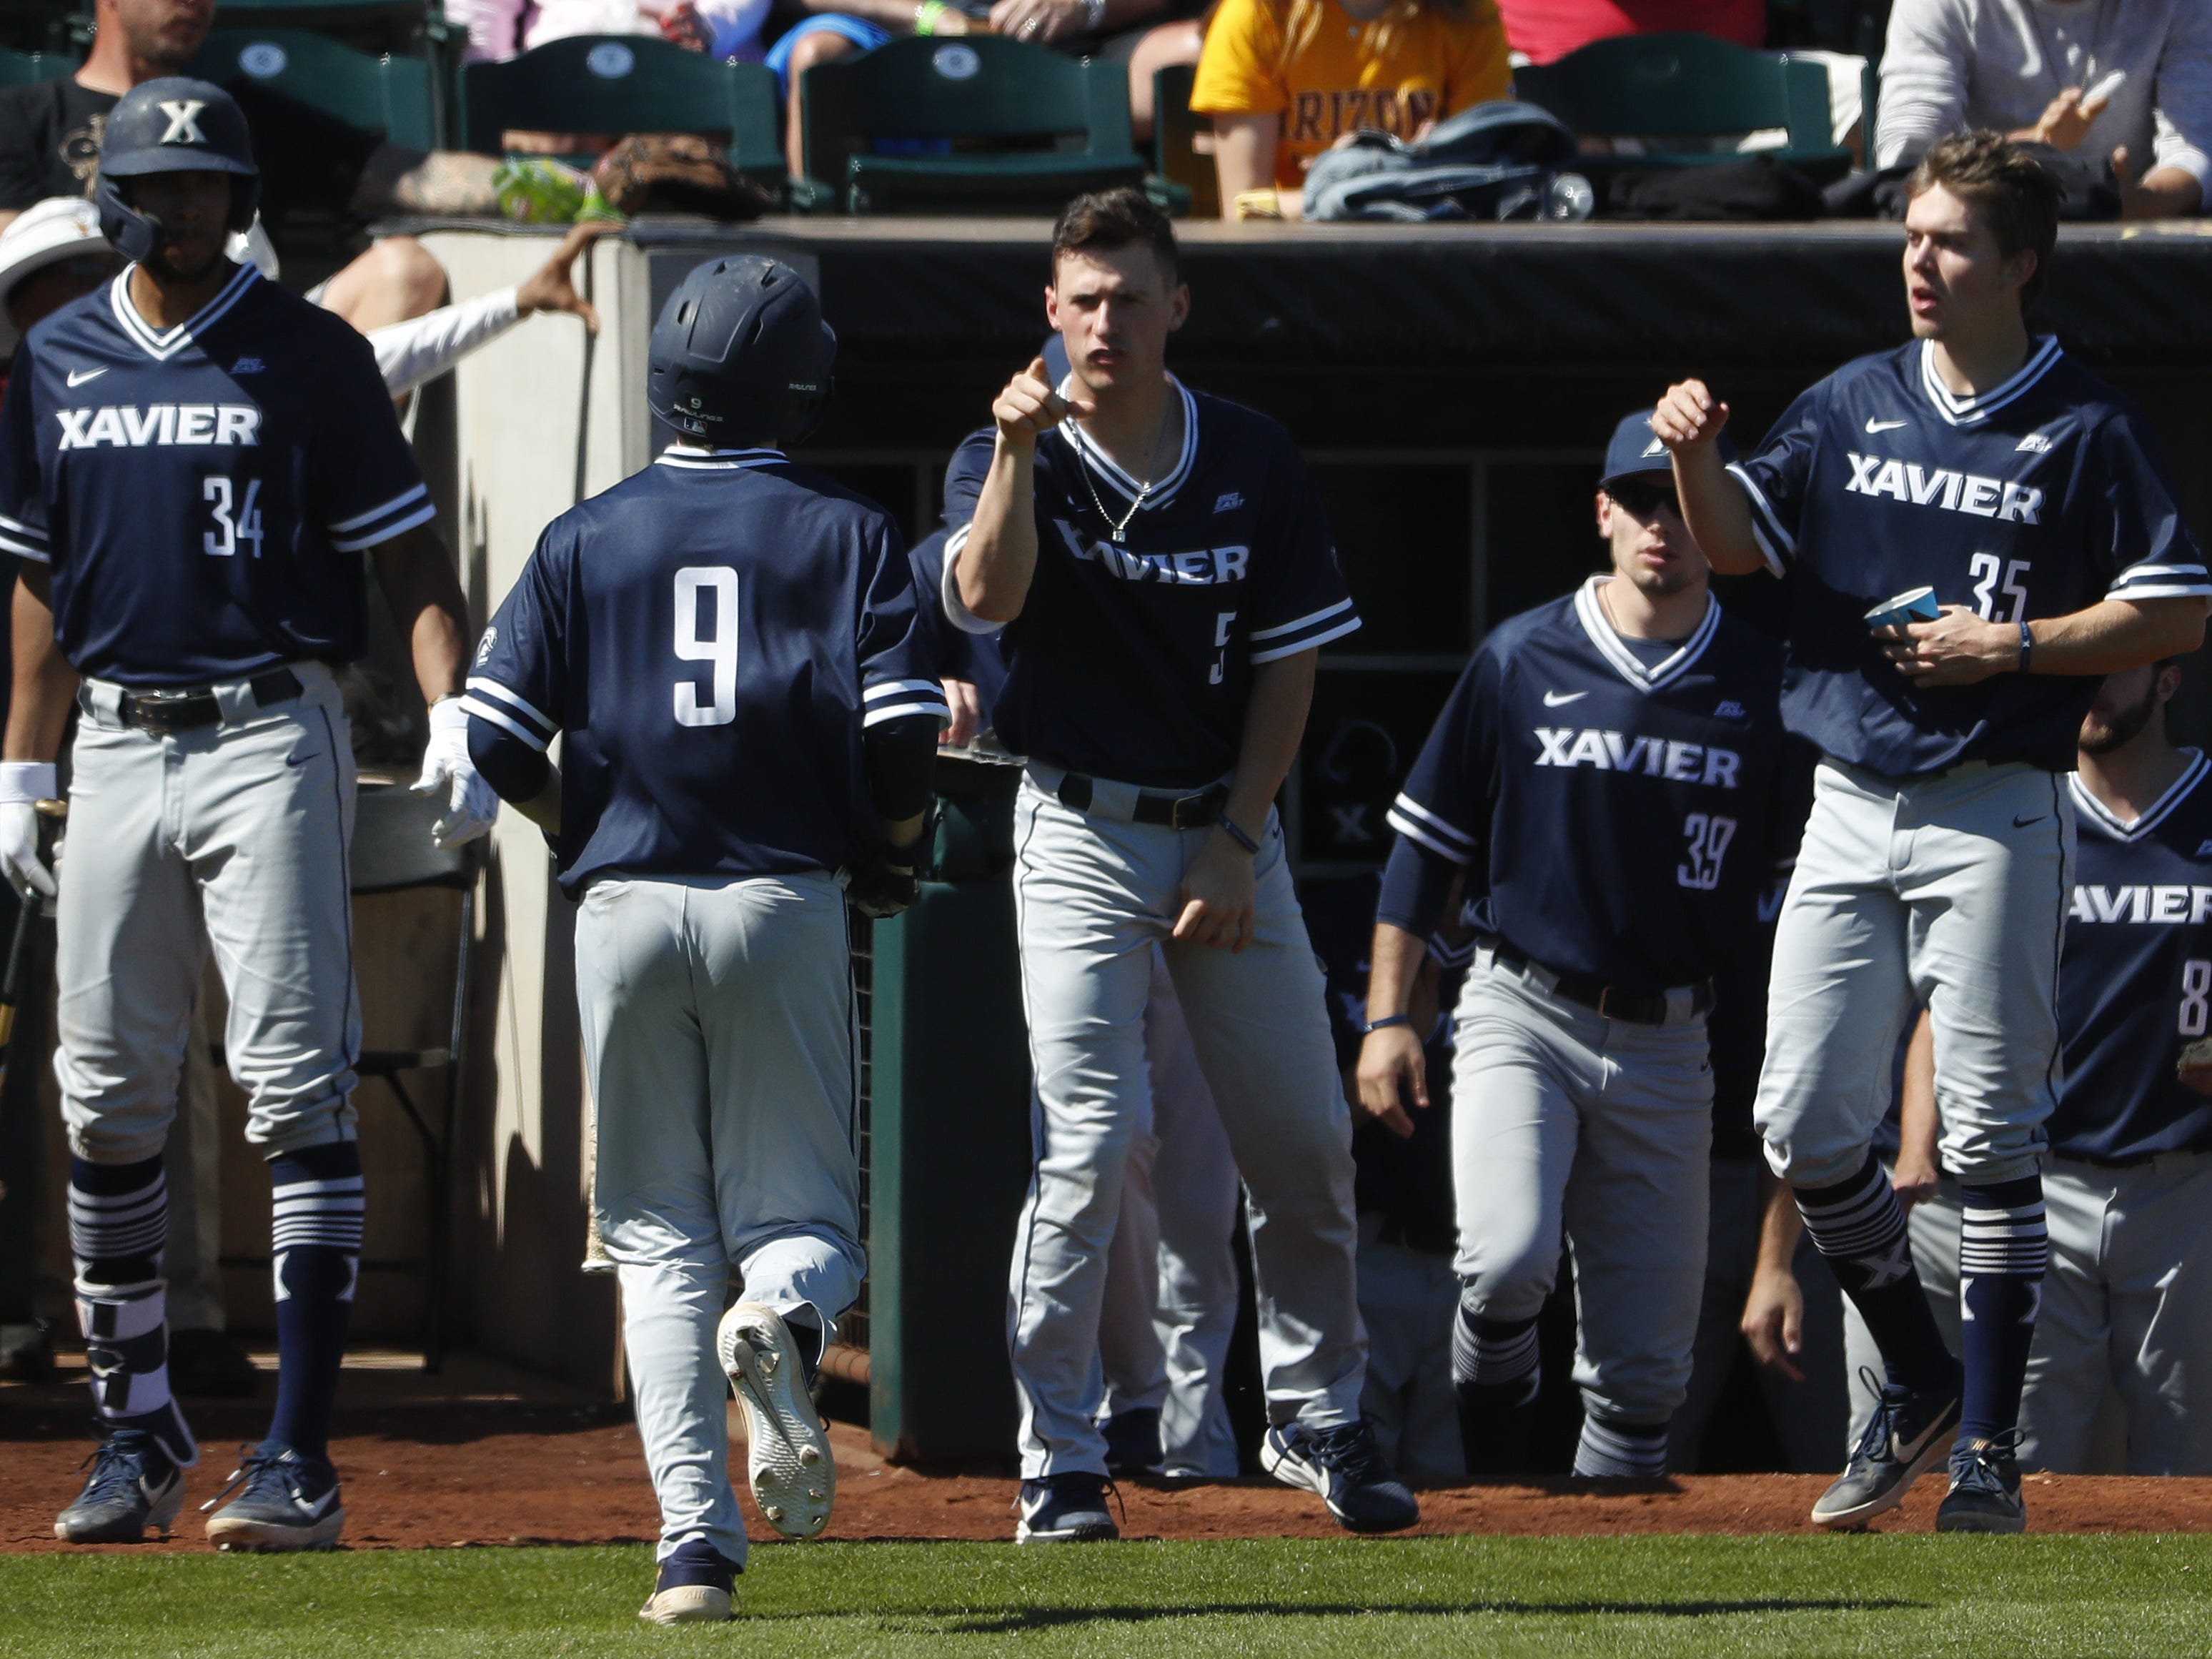 Xavier's Ryan Altenberger (9) celebrates with his teammates after scoring during a game against ASU at Phoenix Municipal Stadium in Phoenix, Ariz. on March 10, 2019.